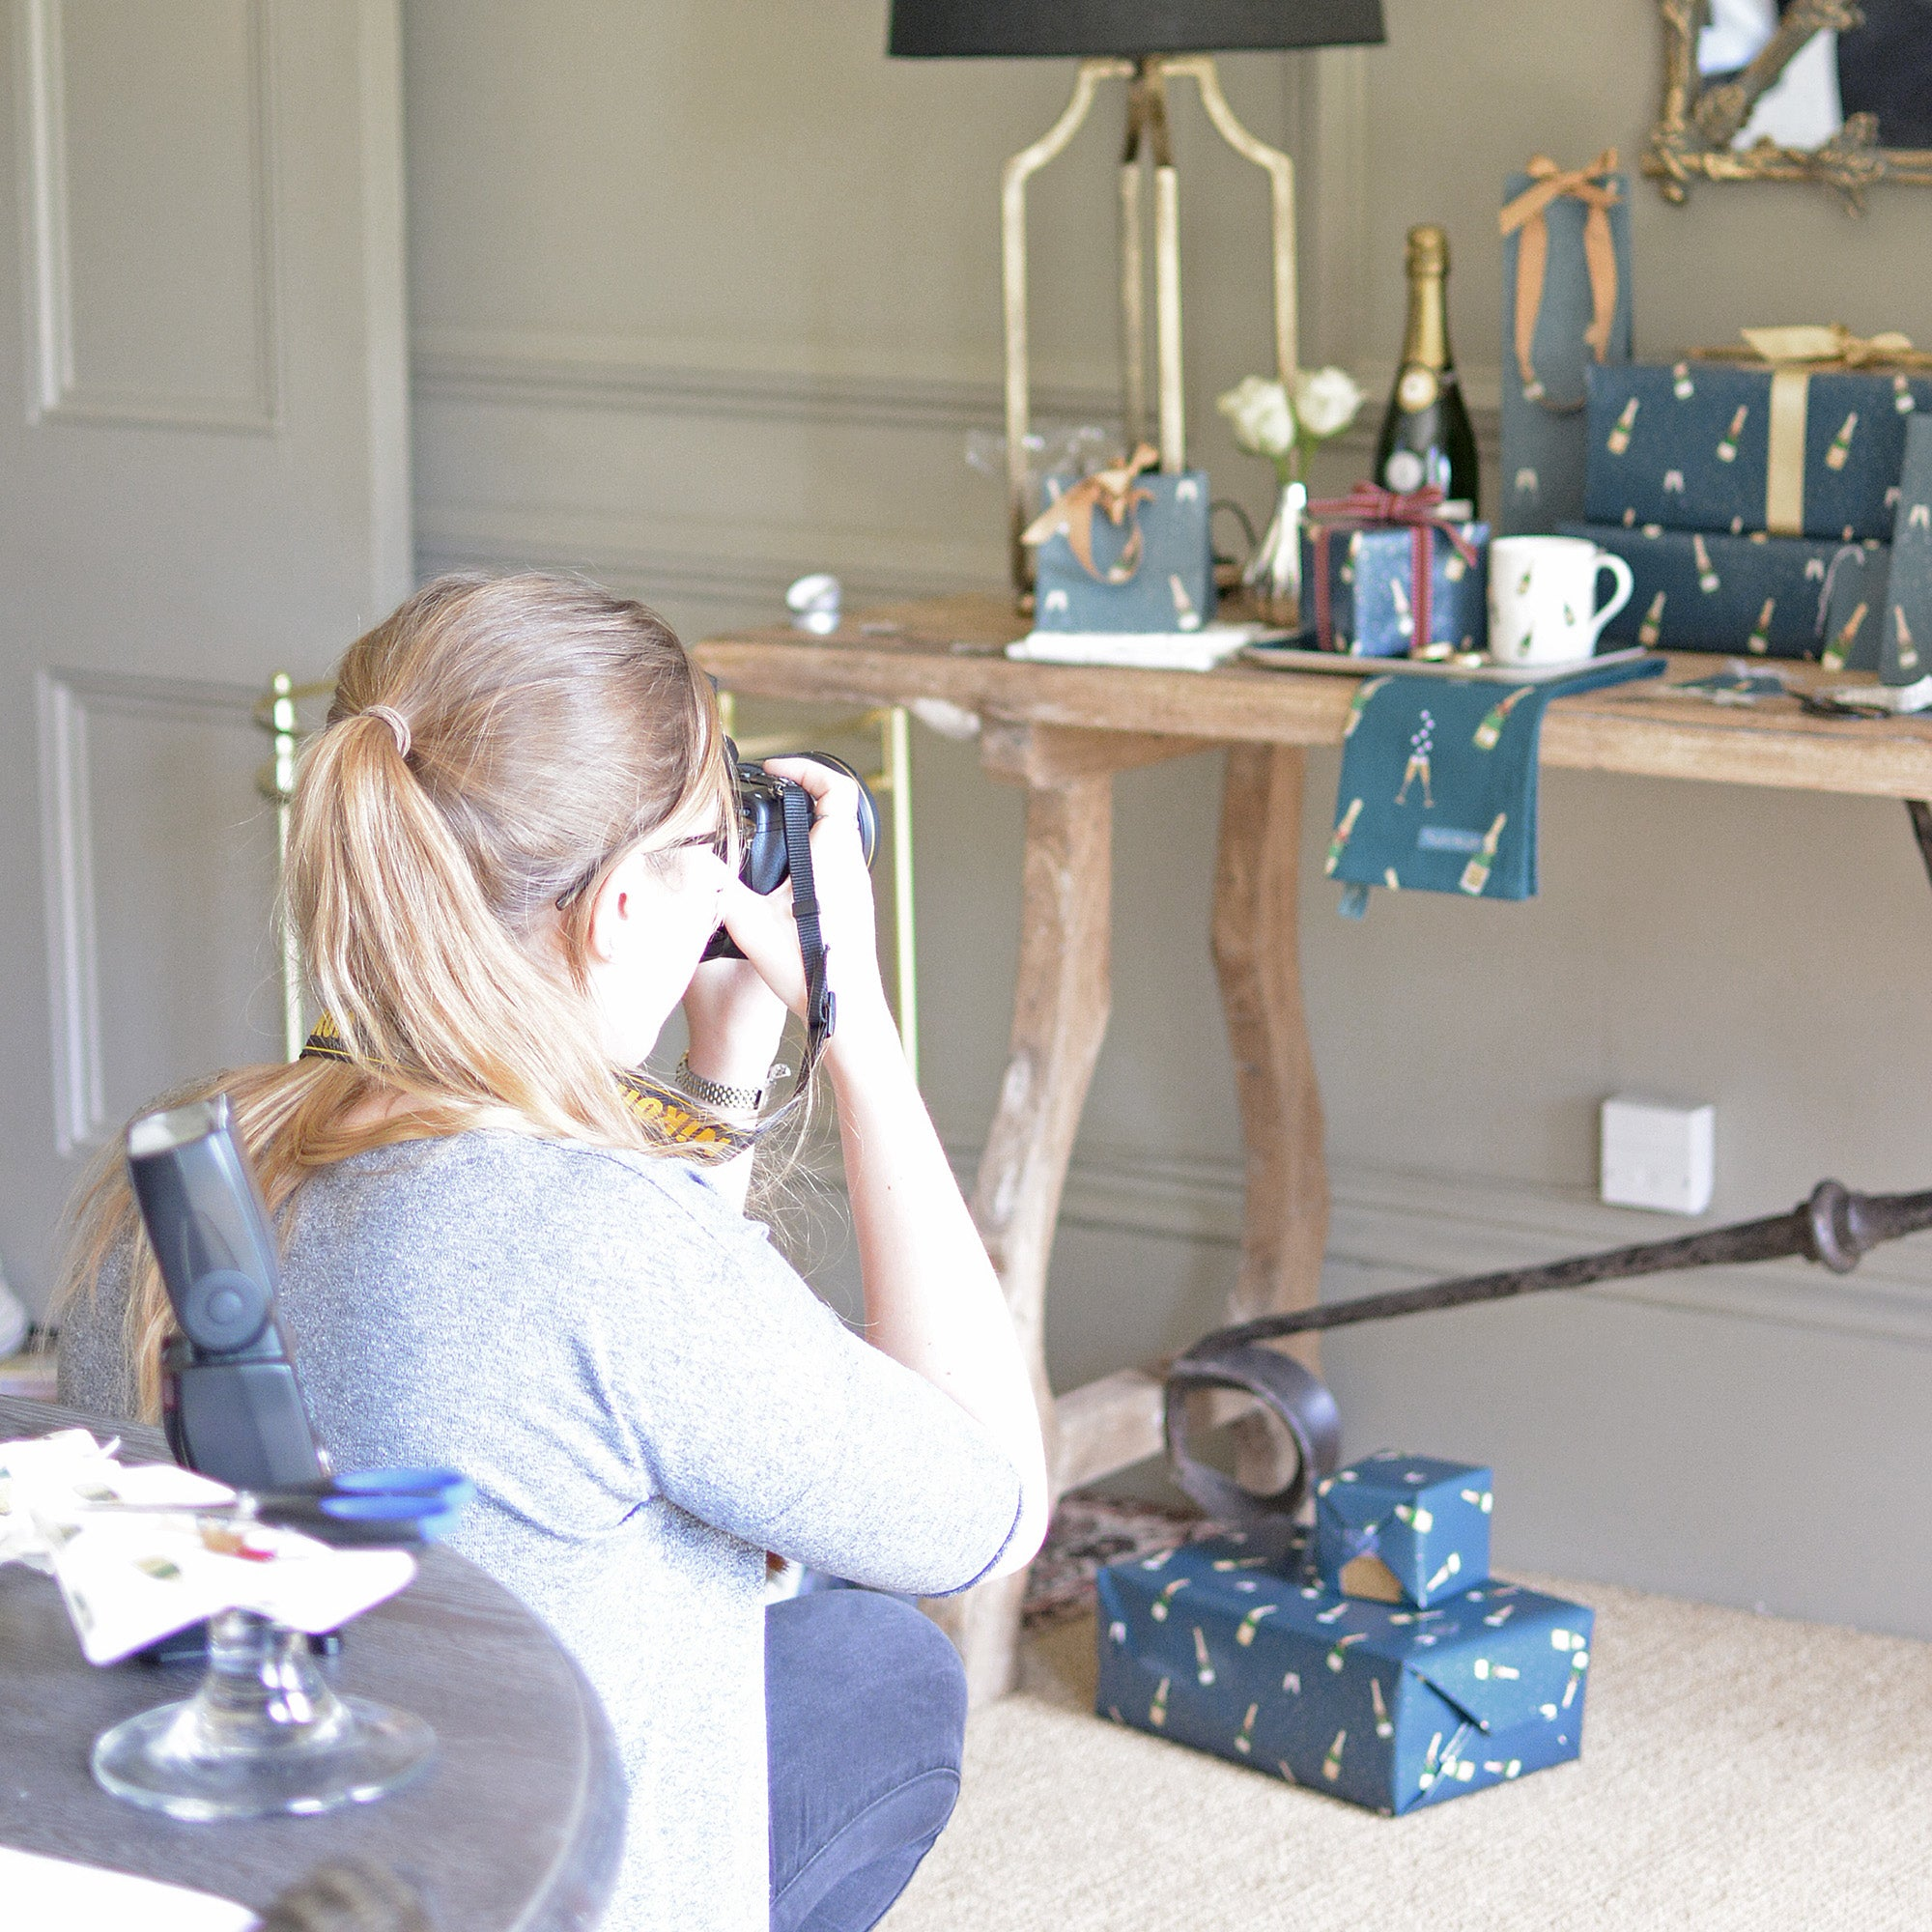 Behind The Scenes Of Our Bubbles & Fizz Photoshoot